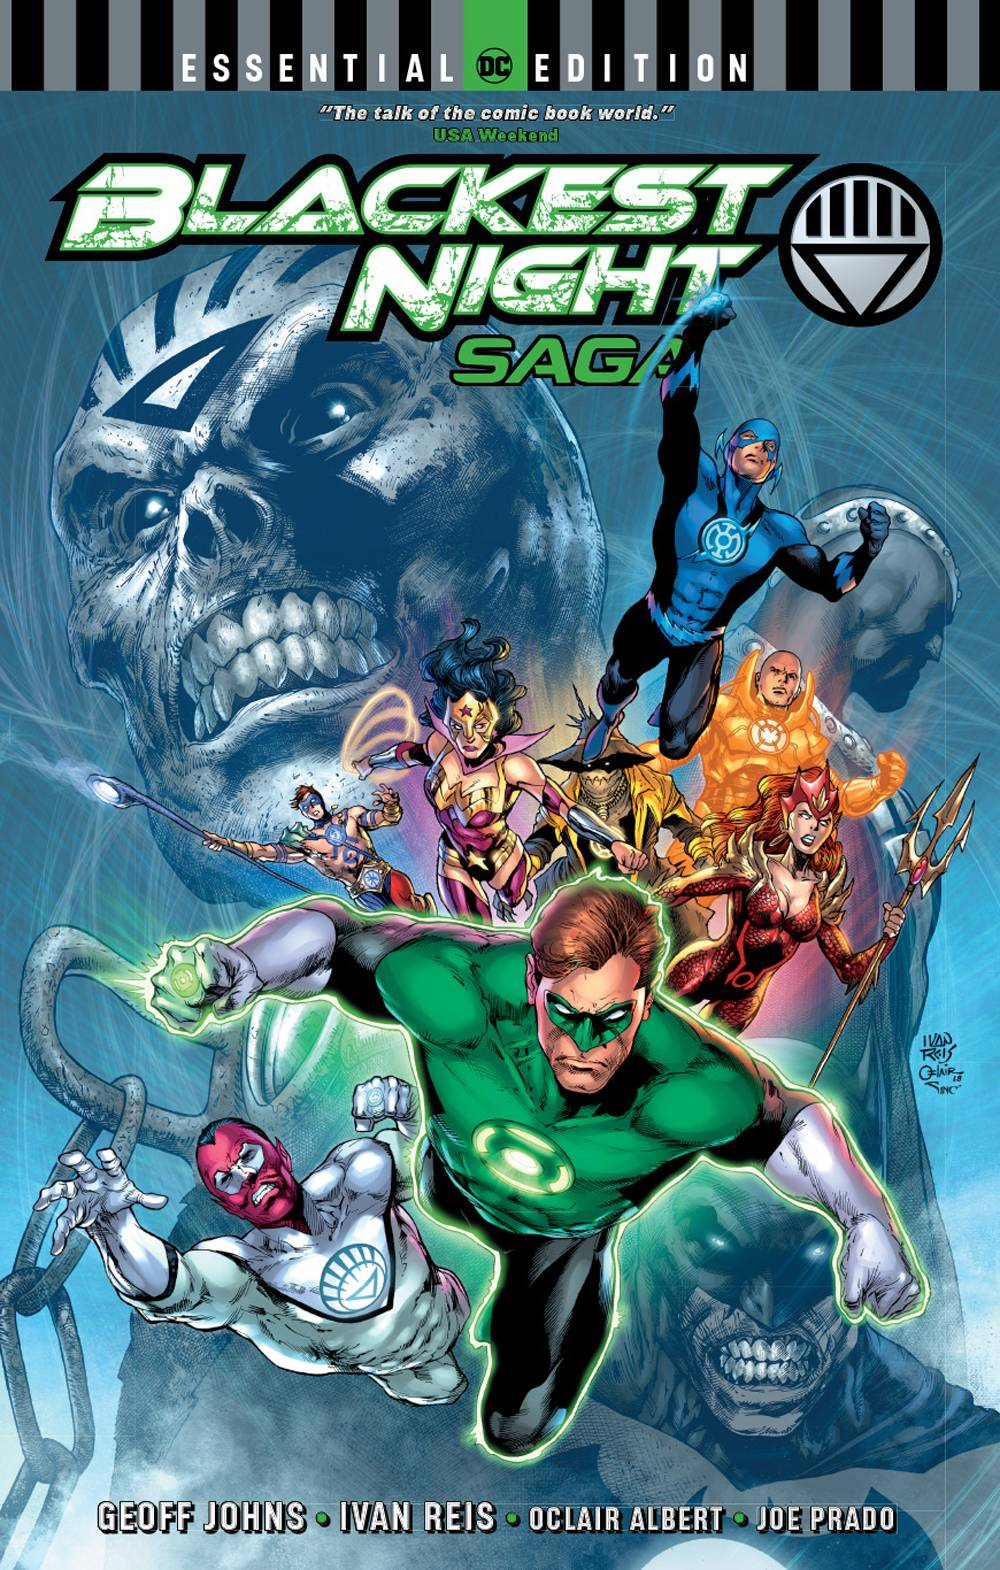 BLACKEST NIGHT SAGA ESSENTIAL EDITION TP.jpg